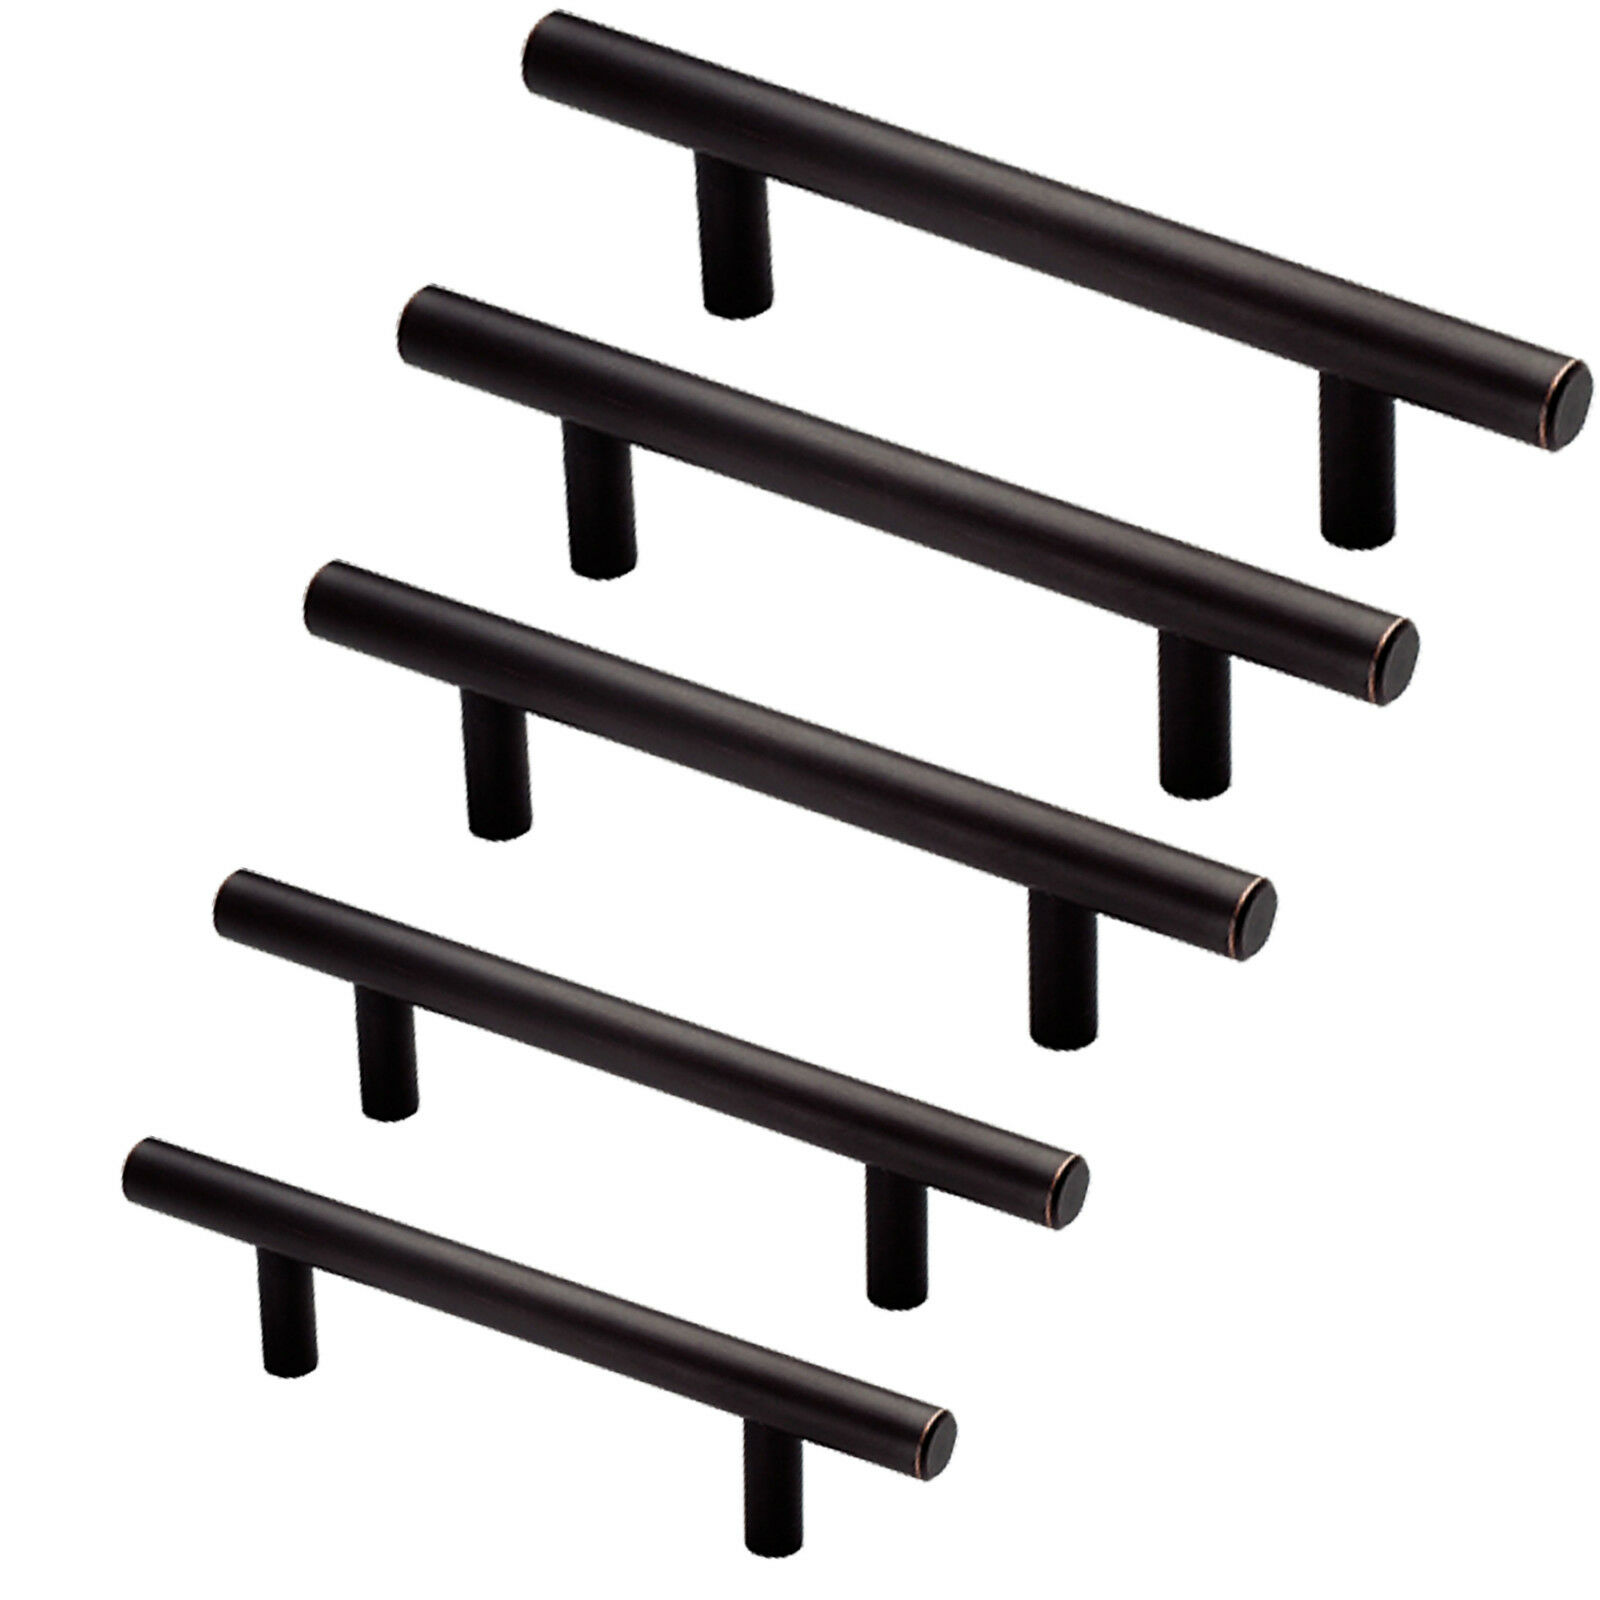 oil rubbed bronze cabinet hardware european bar pulls 1 of 1 see more - Oil Rubbed Bronze Cabinet Hardware